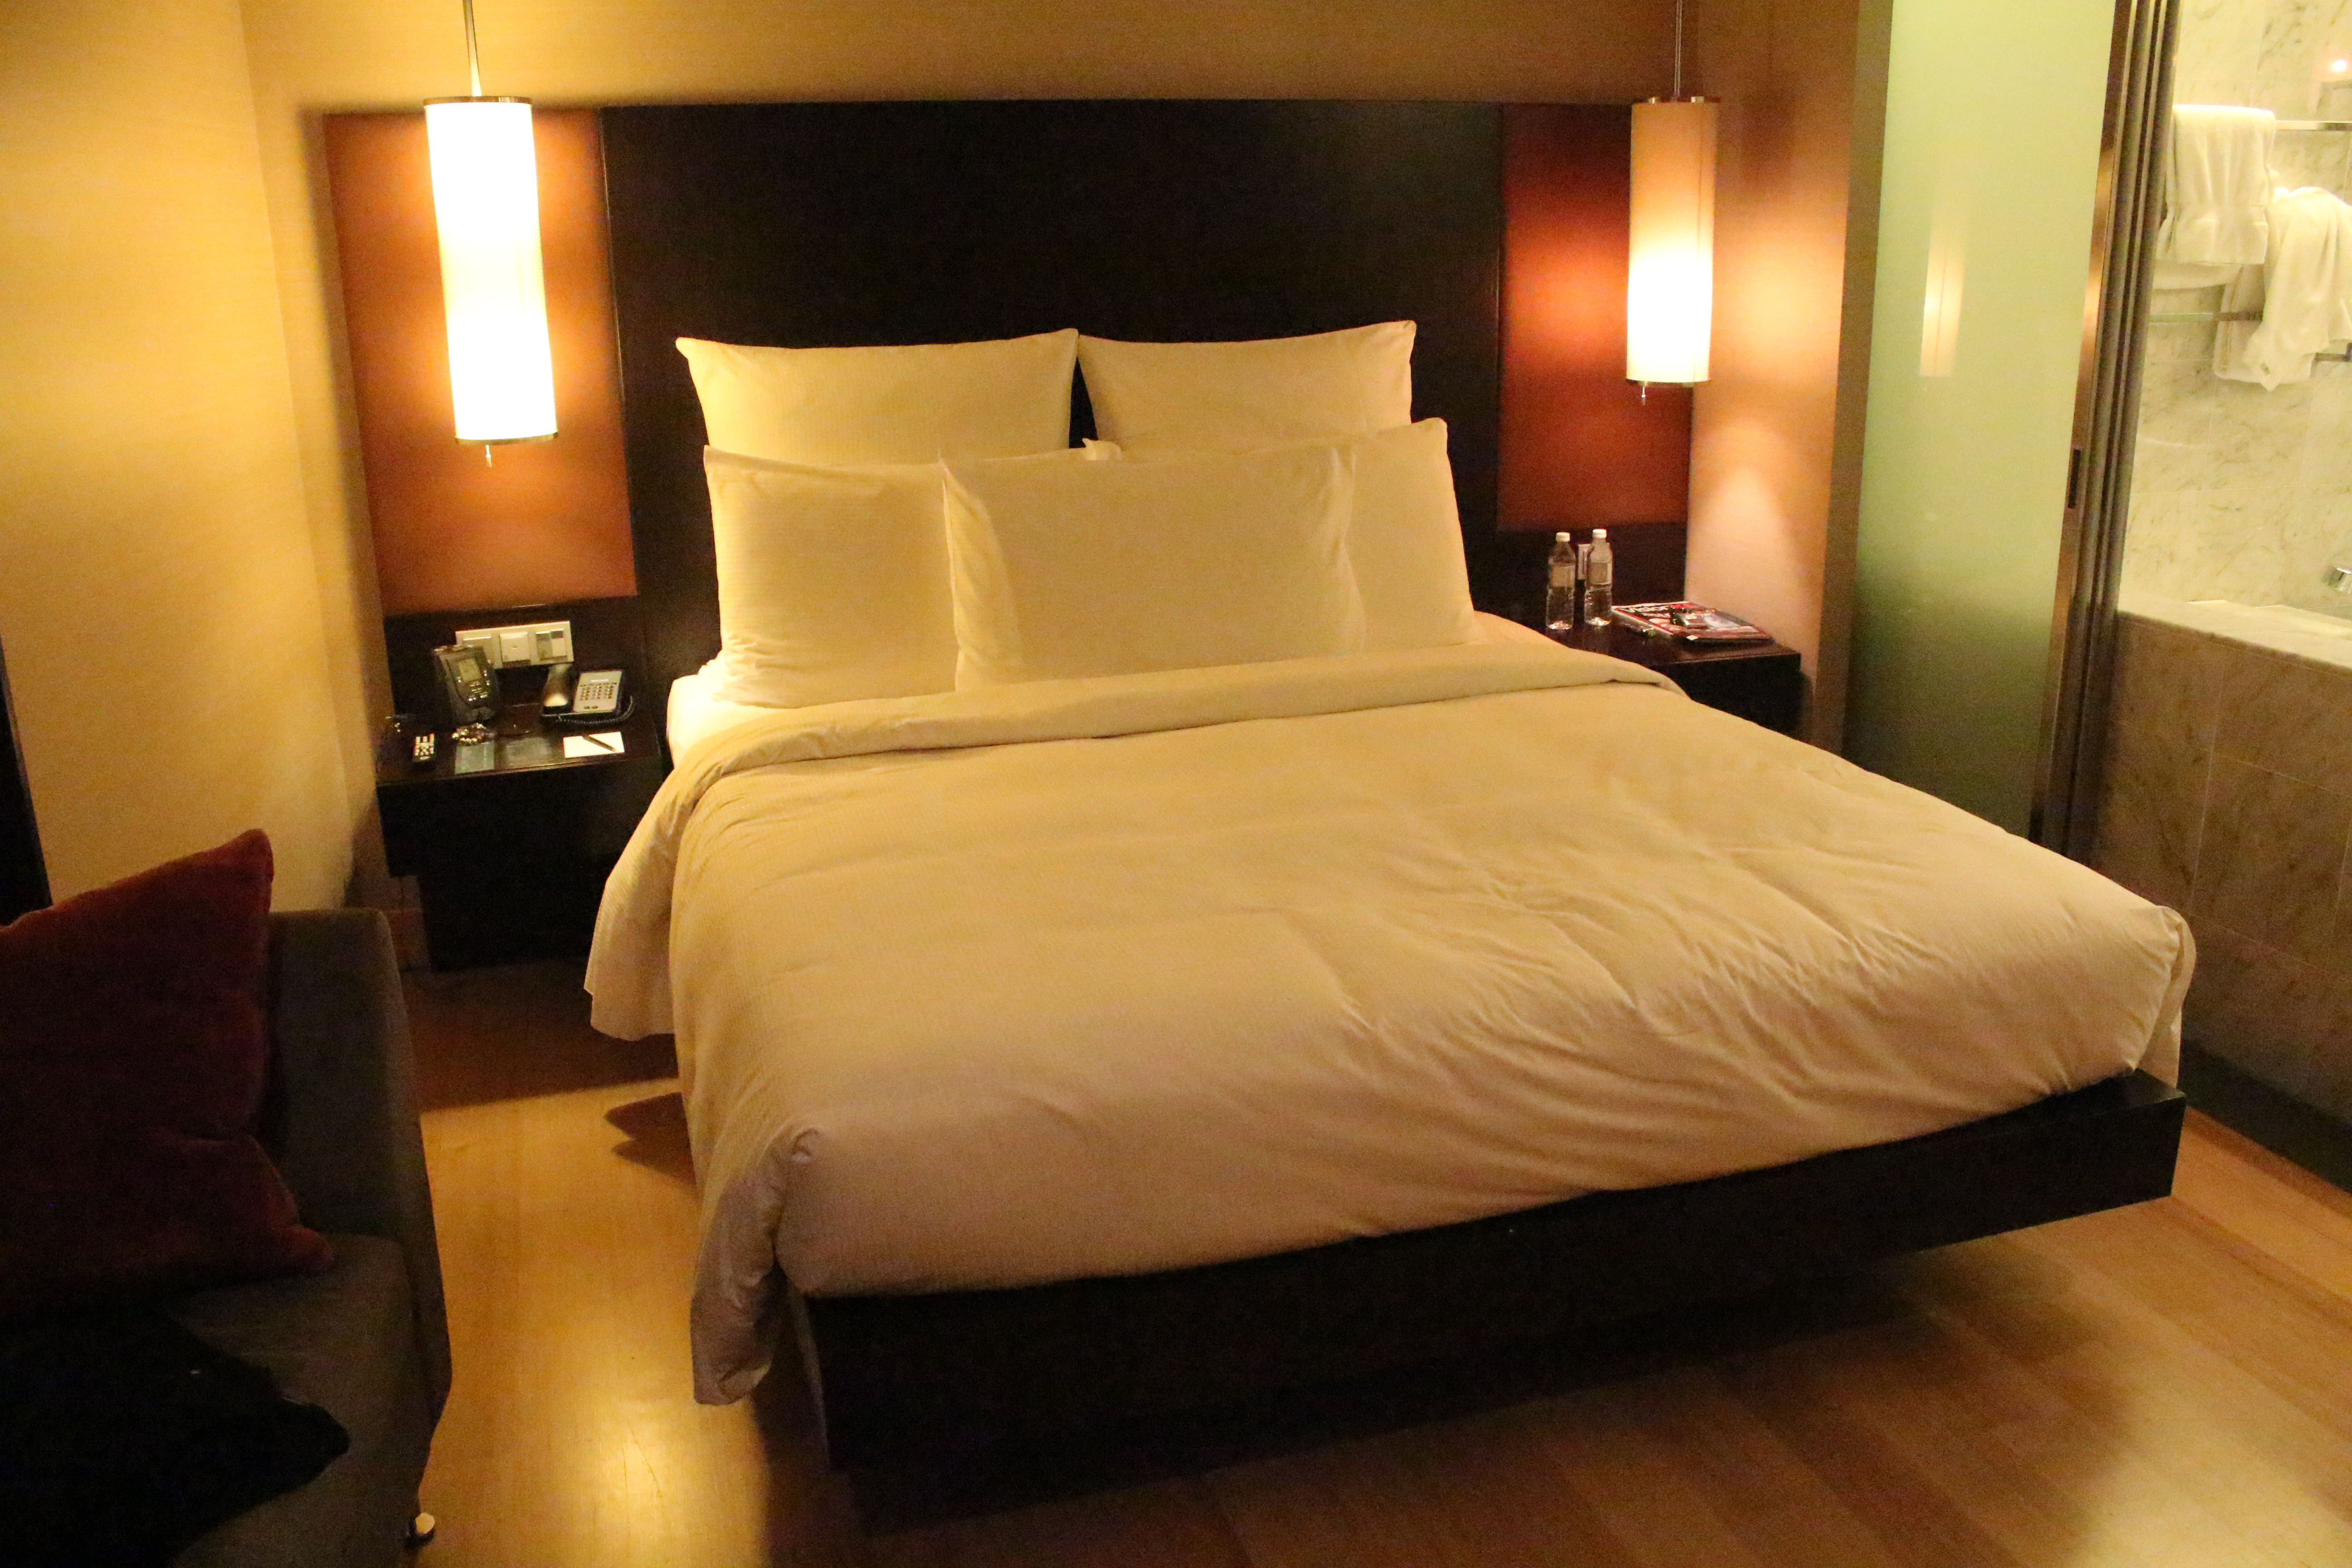 Hotel room at the Hilton in Kuala Lumpur with a king sized bed dressed in white linen.